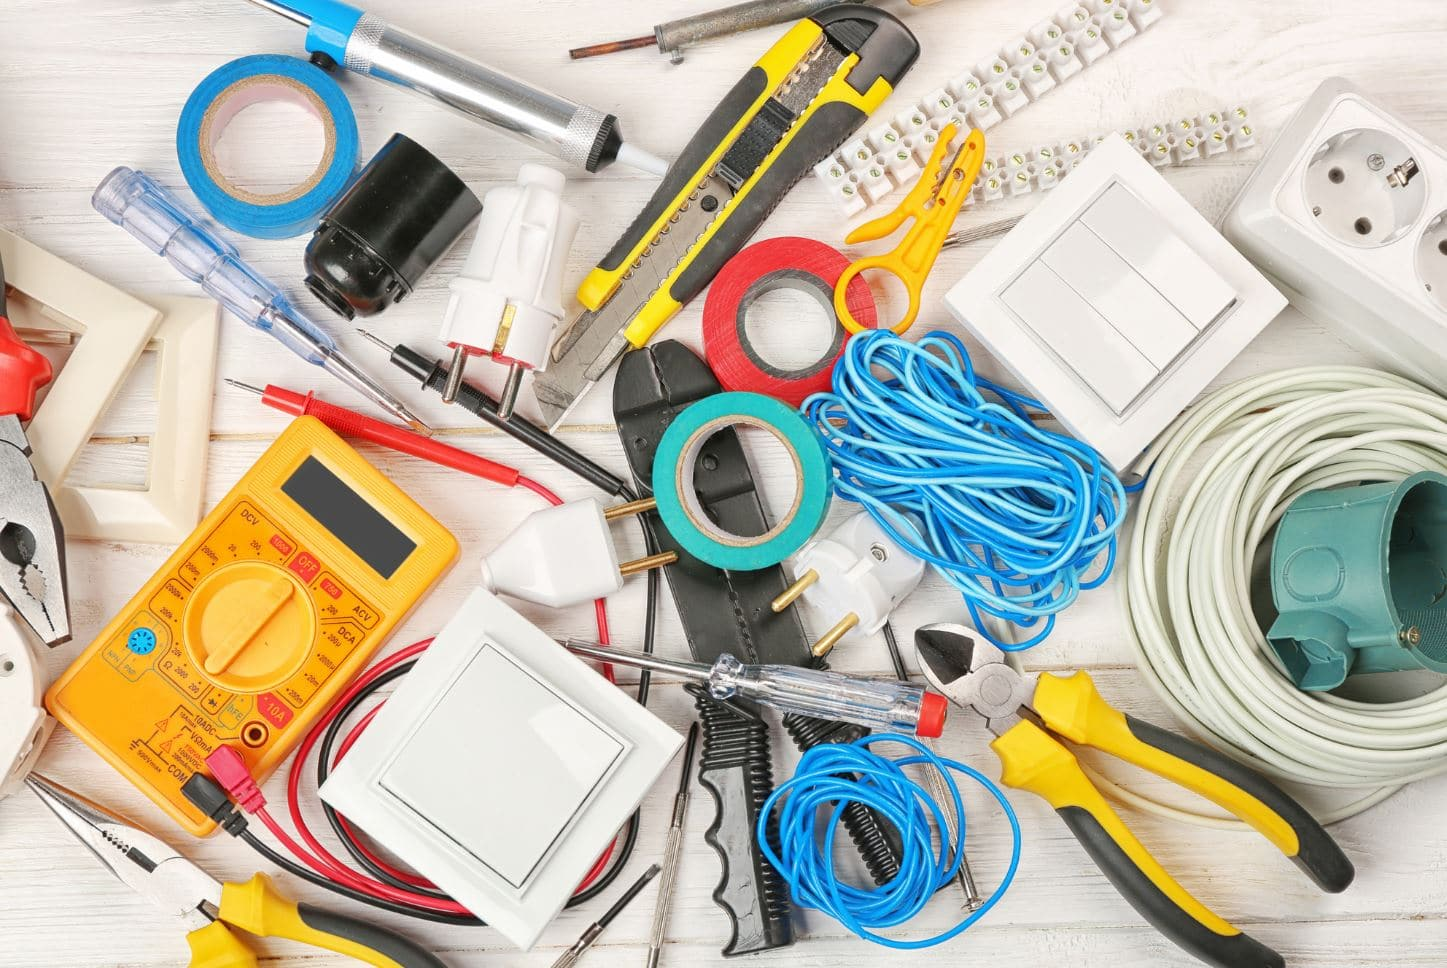 electrical tools scattered on the floor in an overhead shot